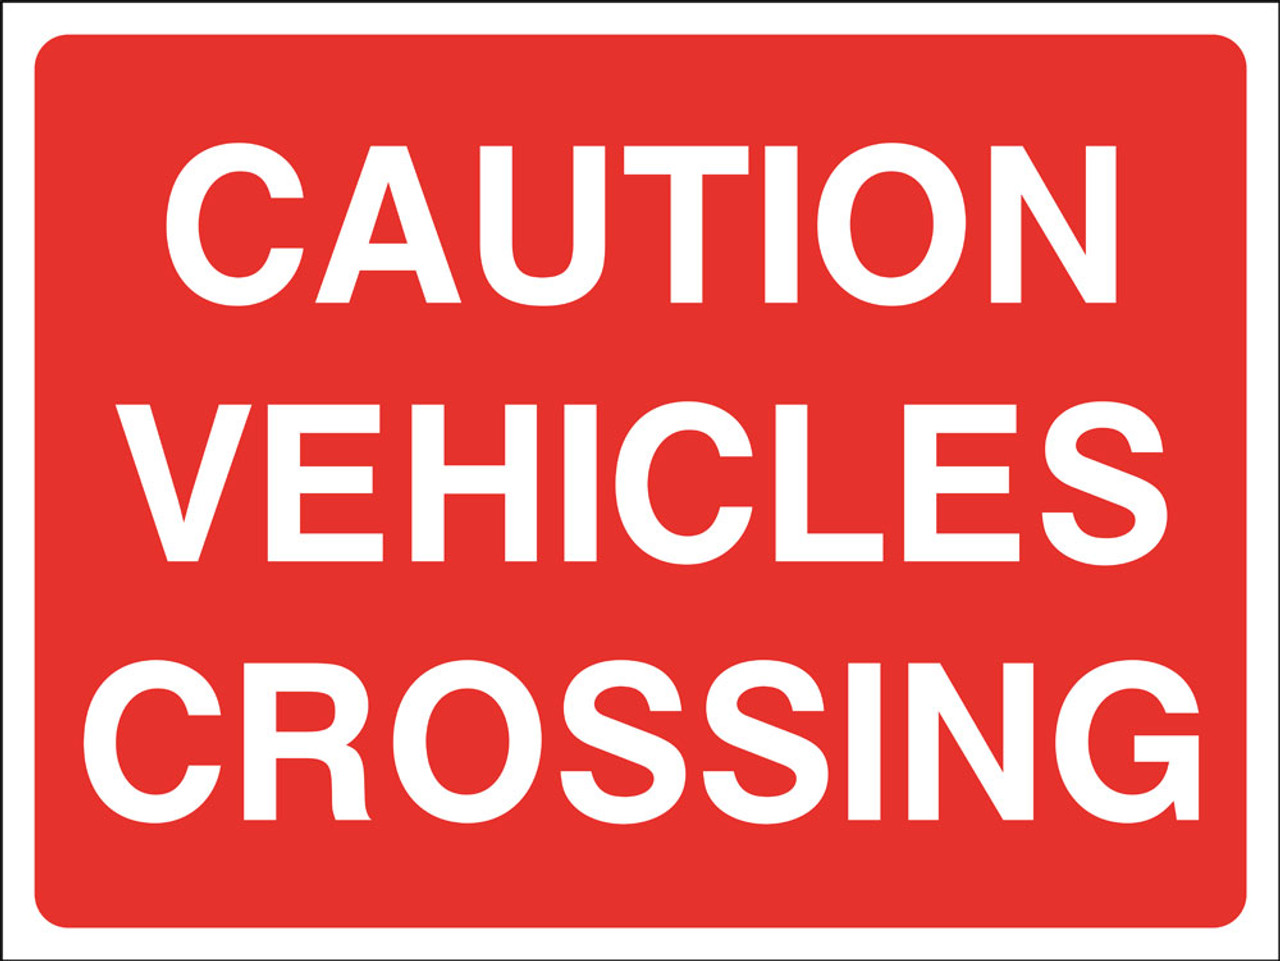 Caution vehicles crossing